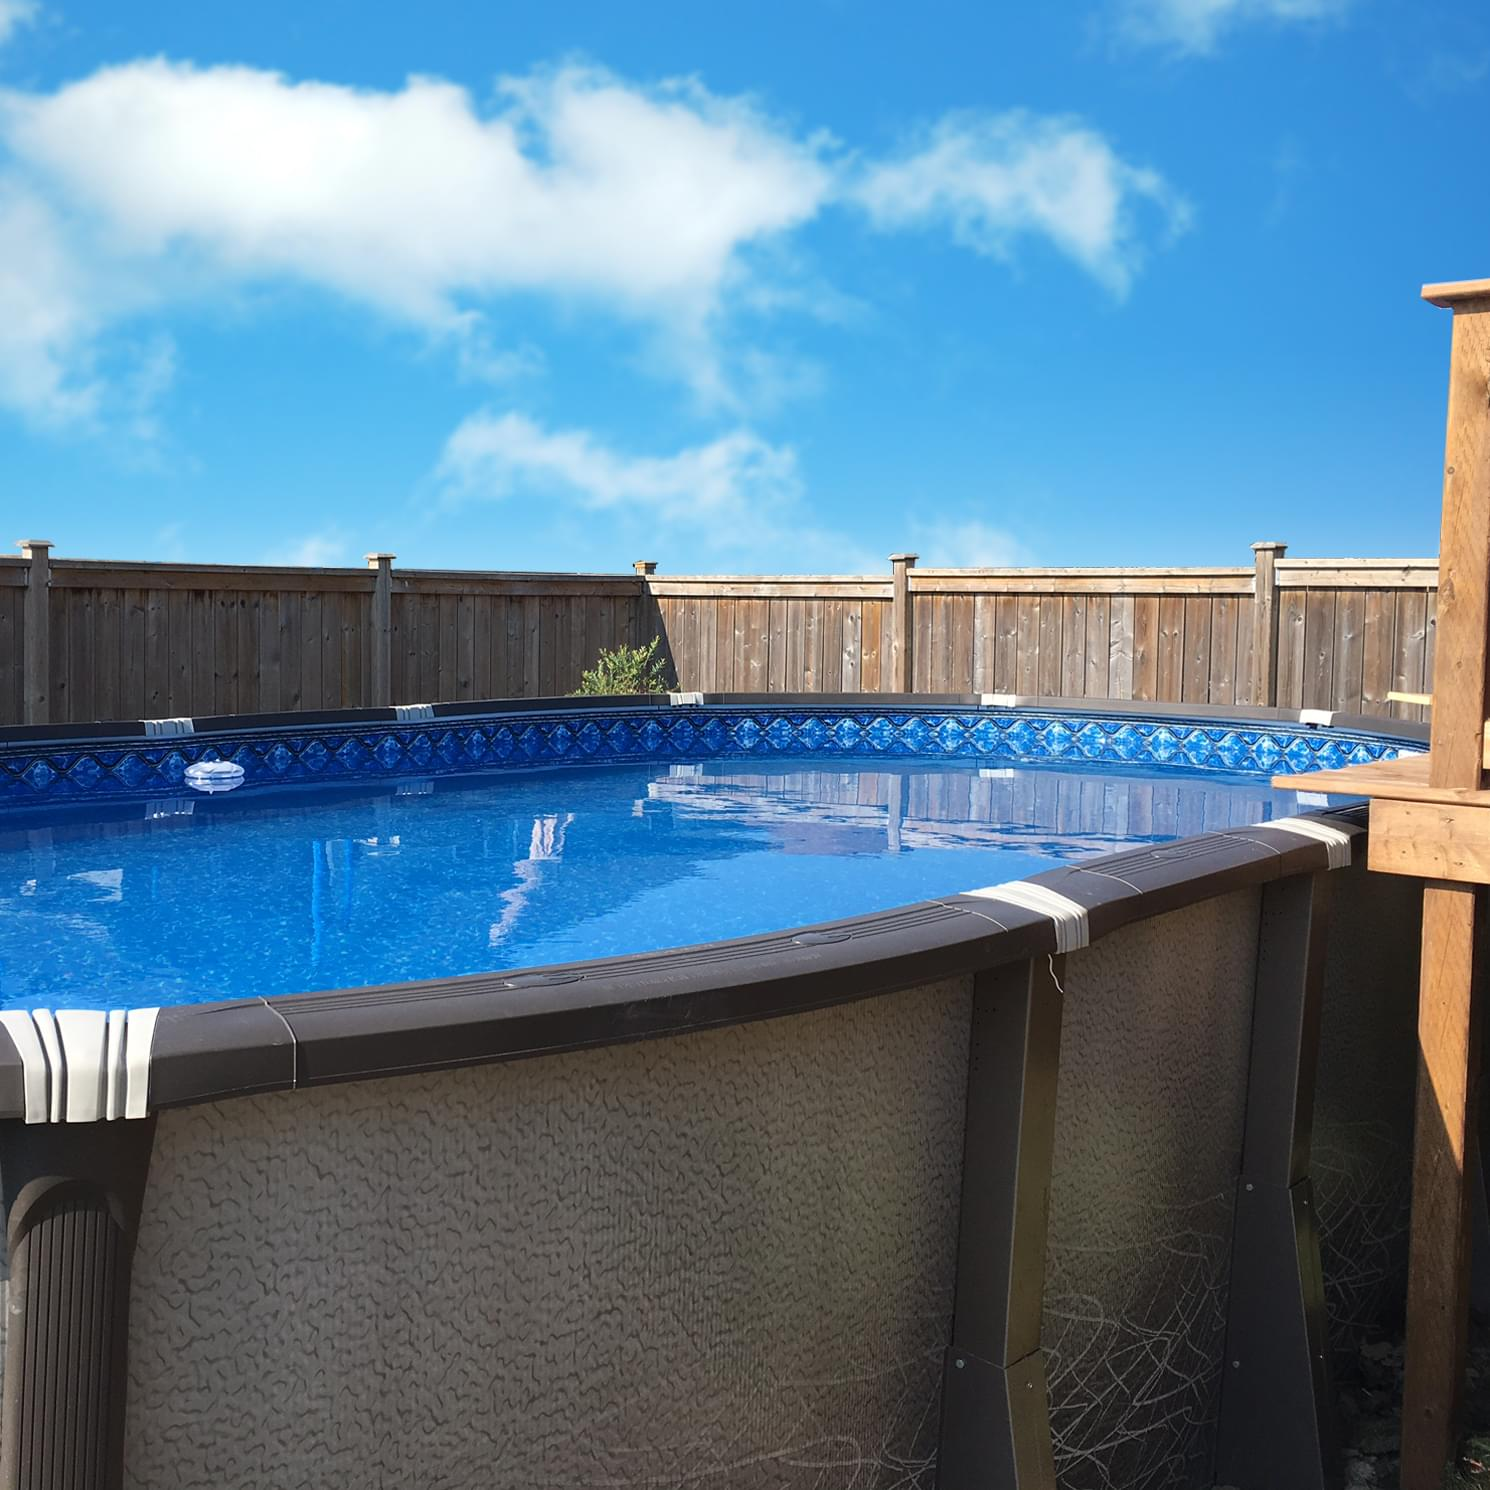 Element 12 x 24 oval above ground pool pool supplies canada for Top of the line above ground pools